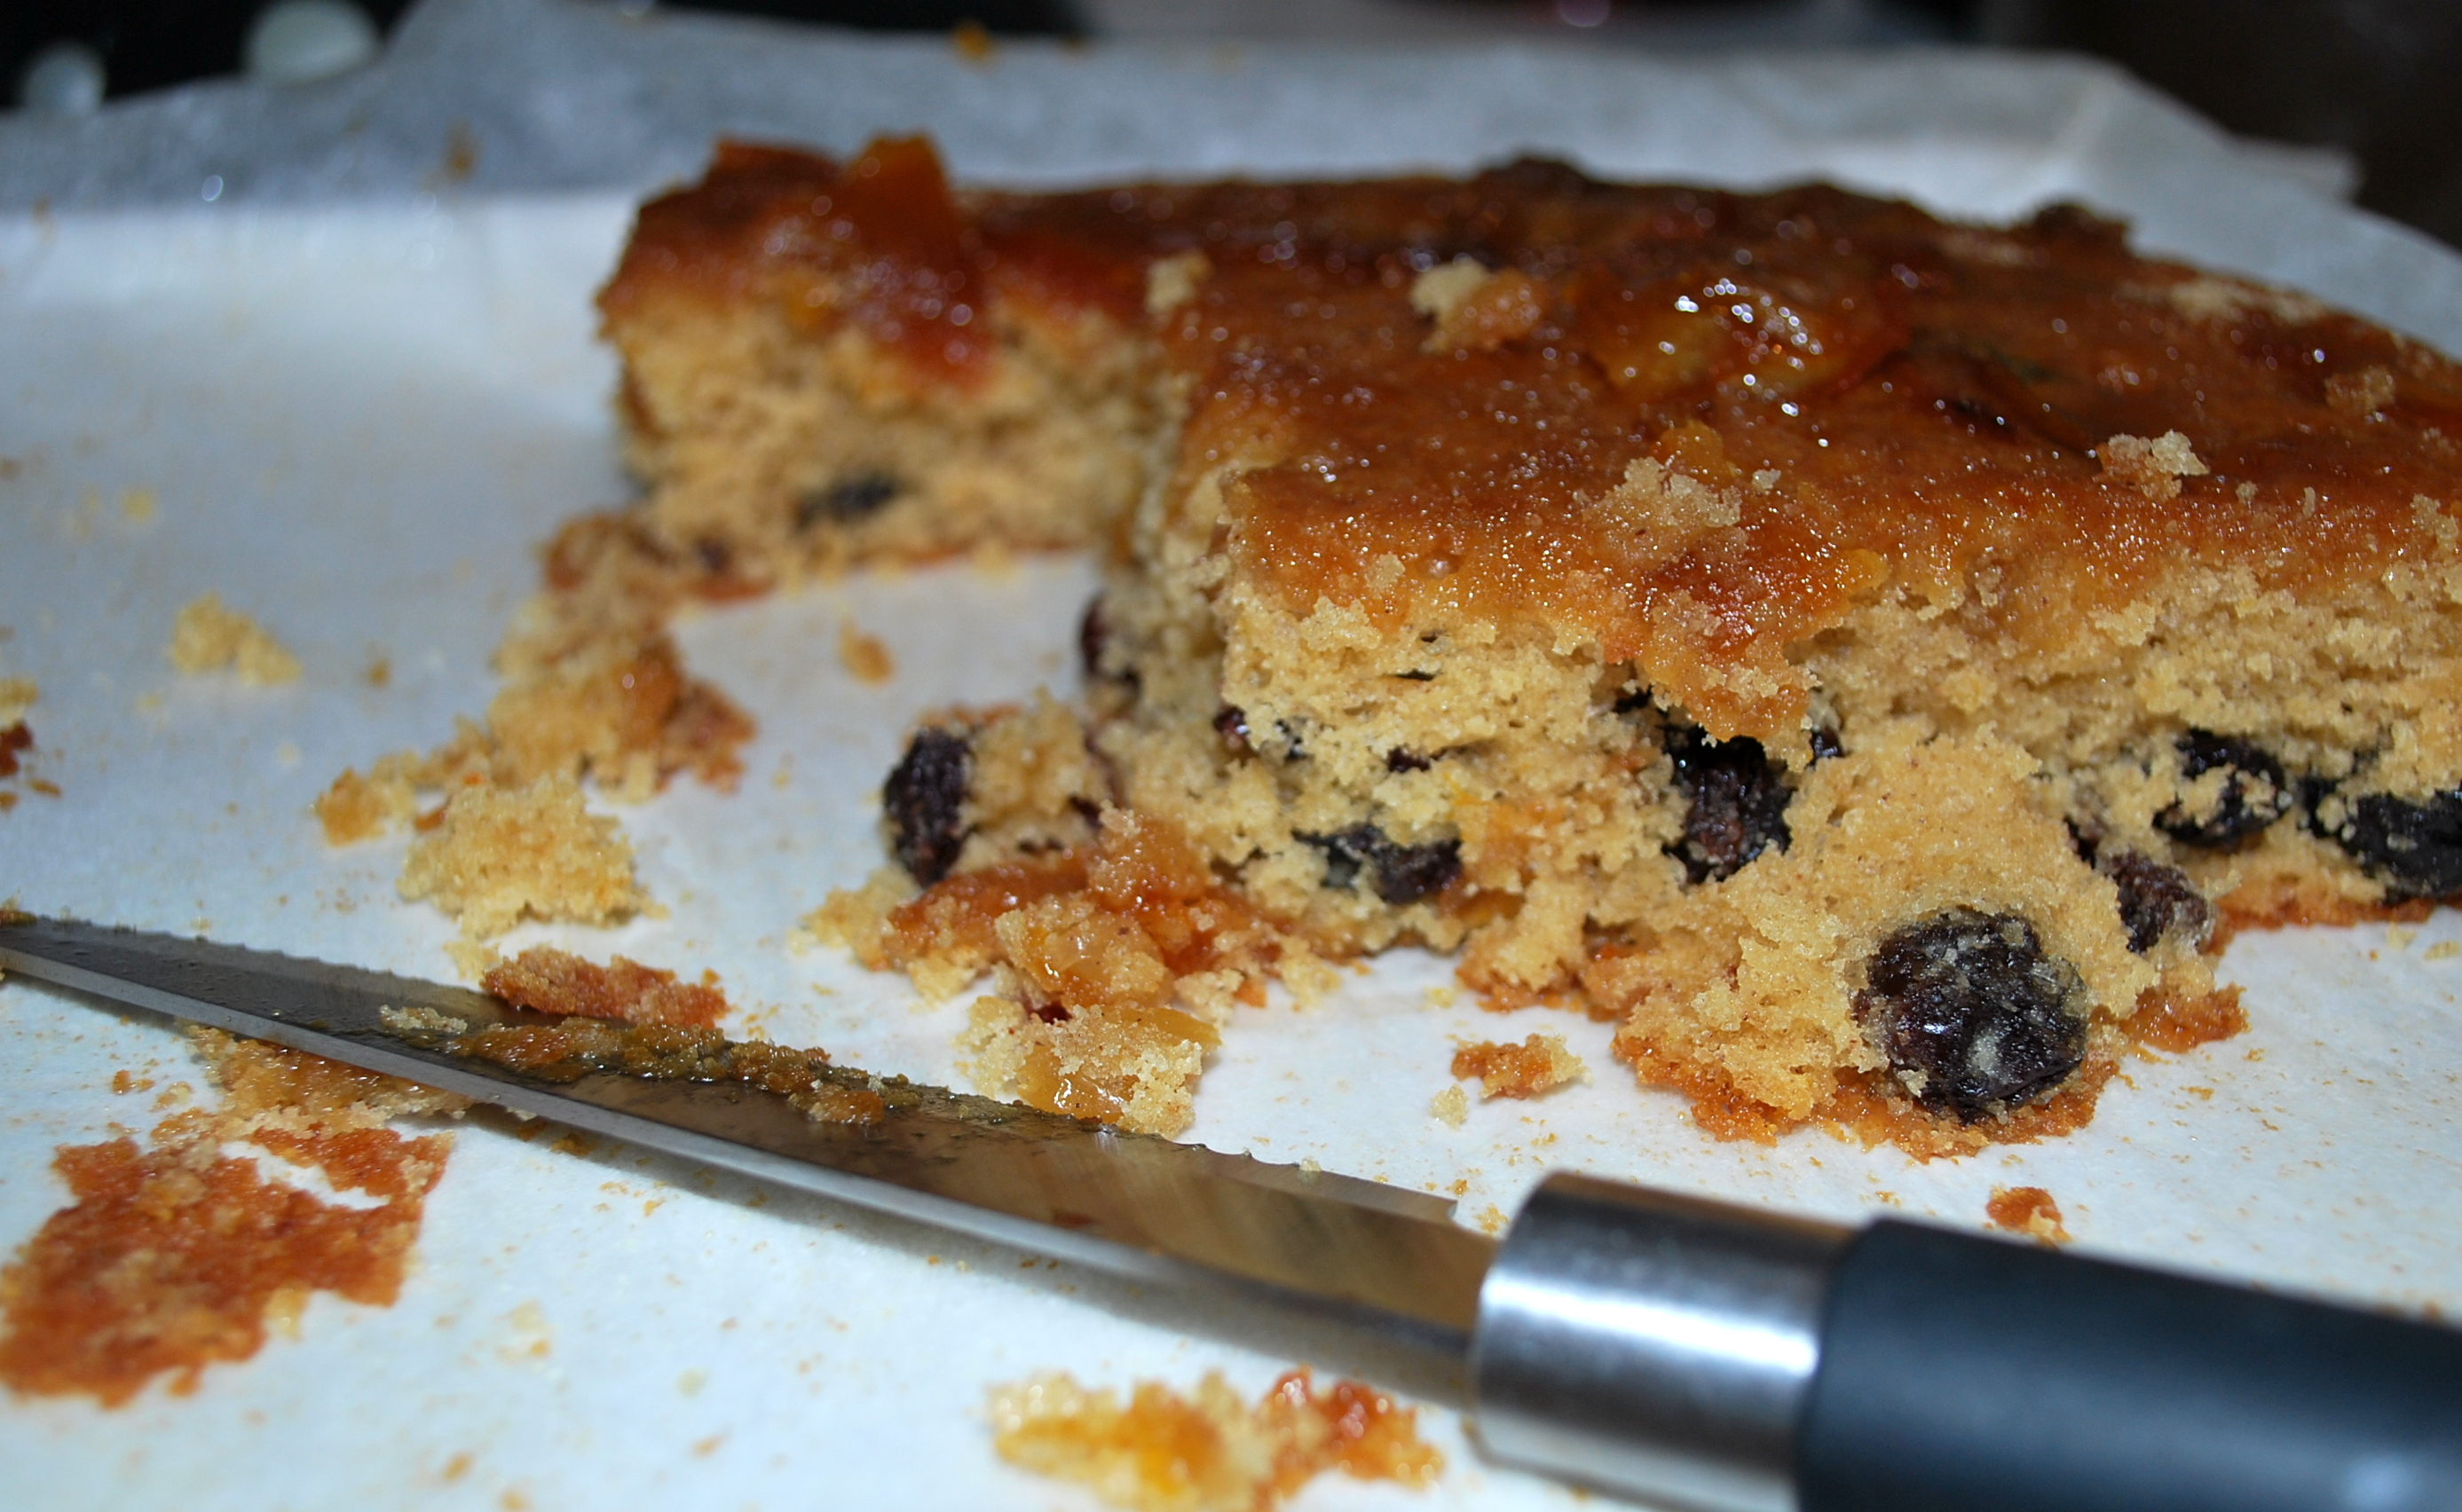 Sticky Citrus and Marmalade Tray Bake – Chica Andaluza